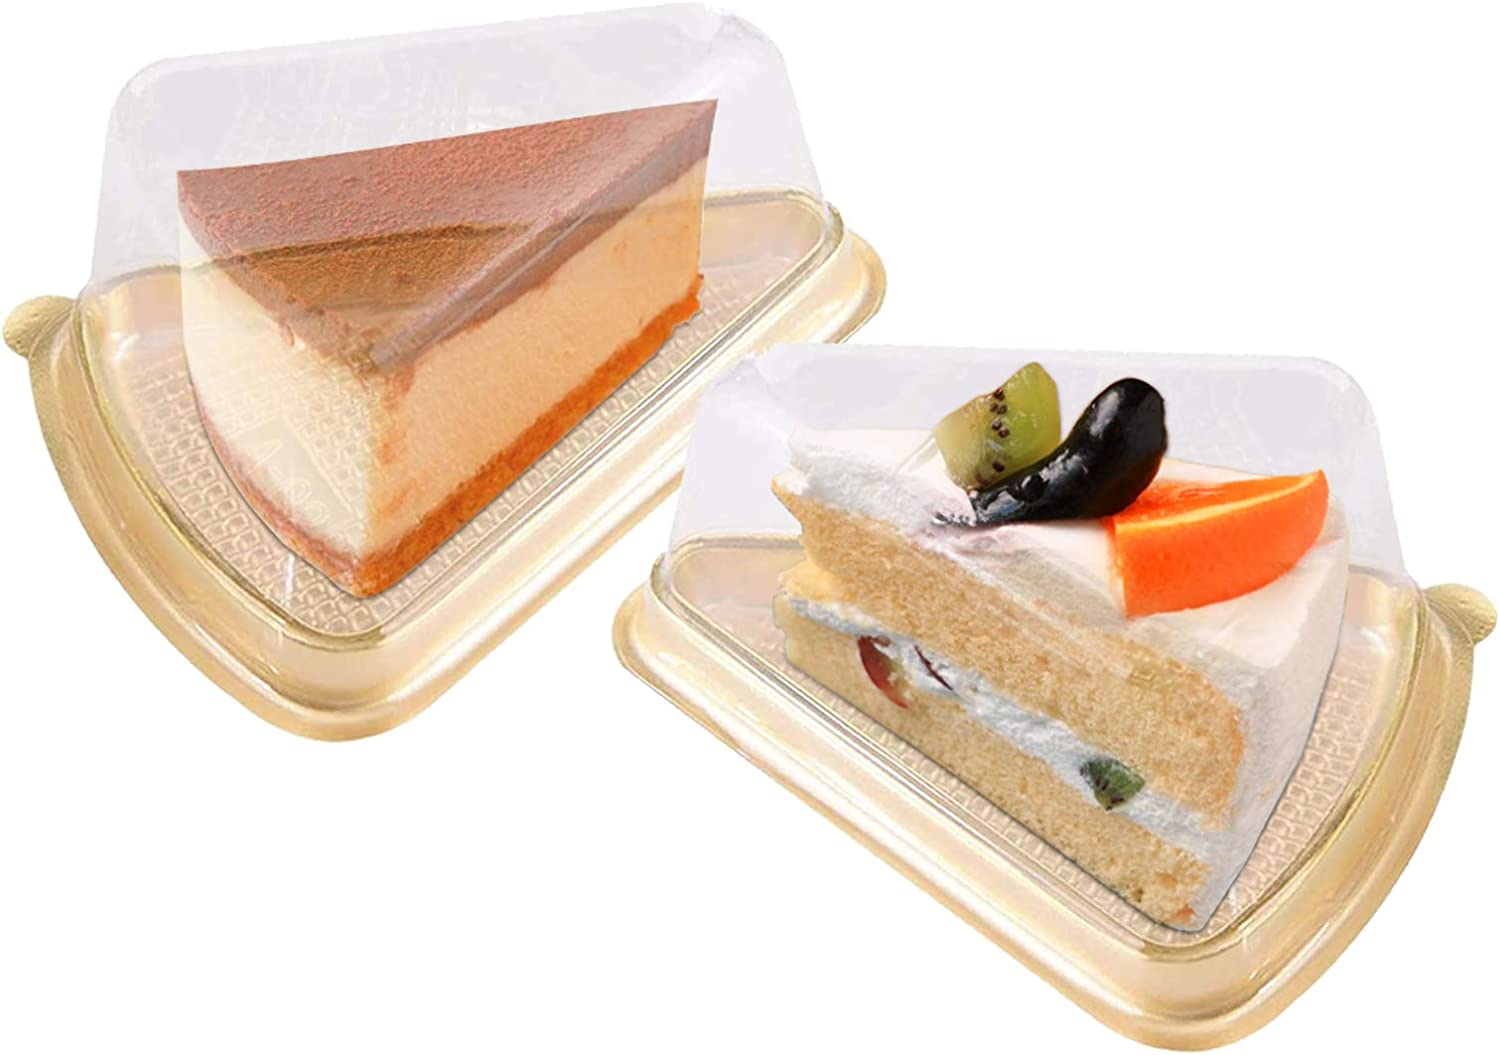 Set of 100 Pcs Cake Slice Container Cheesecake Pies Pies Holder Clear Plastic with Gold Base, Fits Less Than 4.5x3.1x3in Cakes